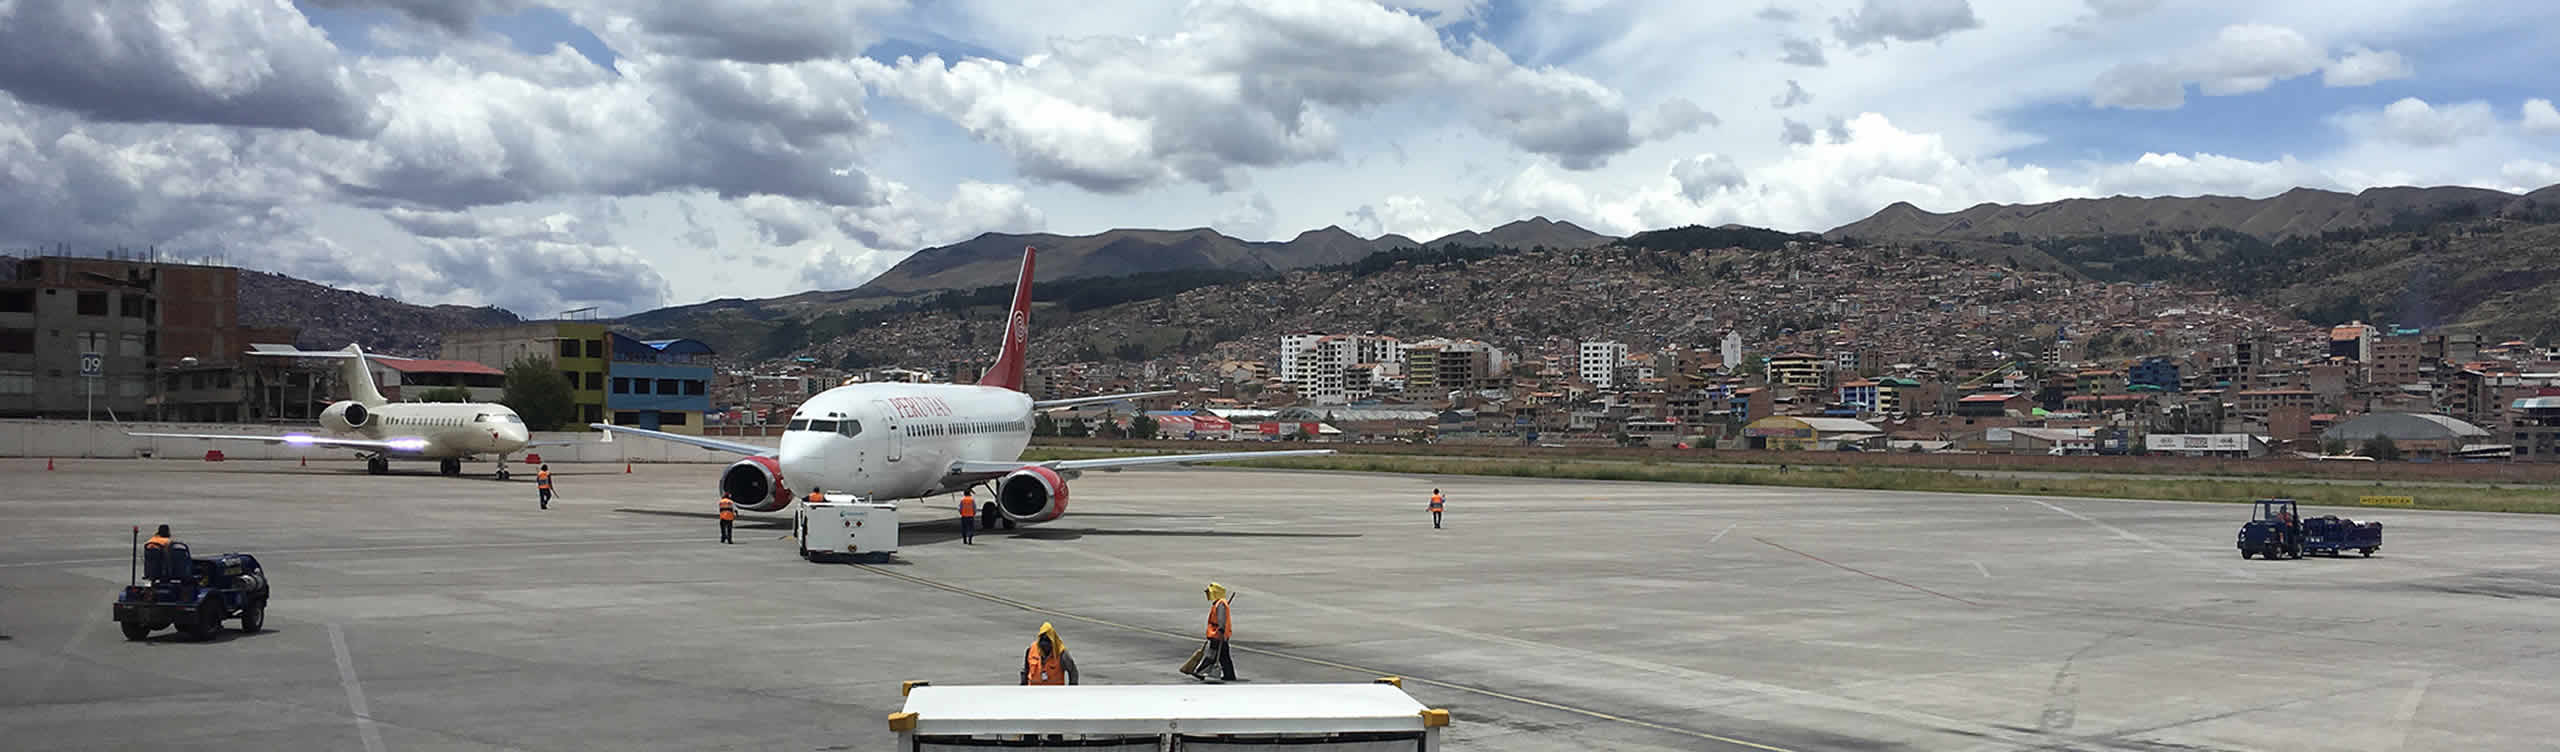 cusco airport